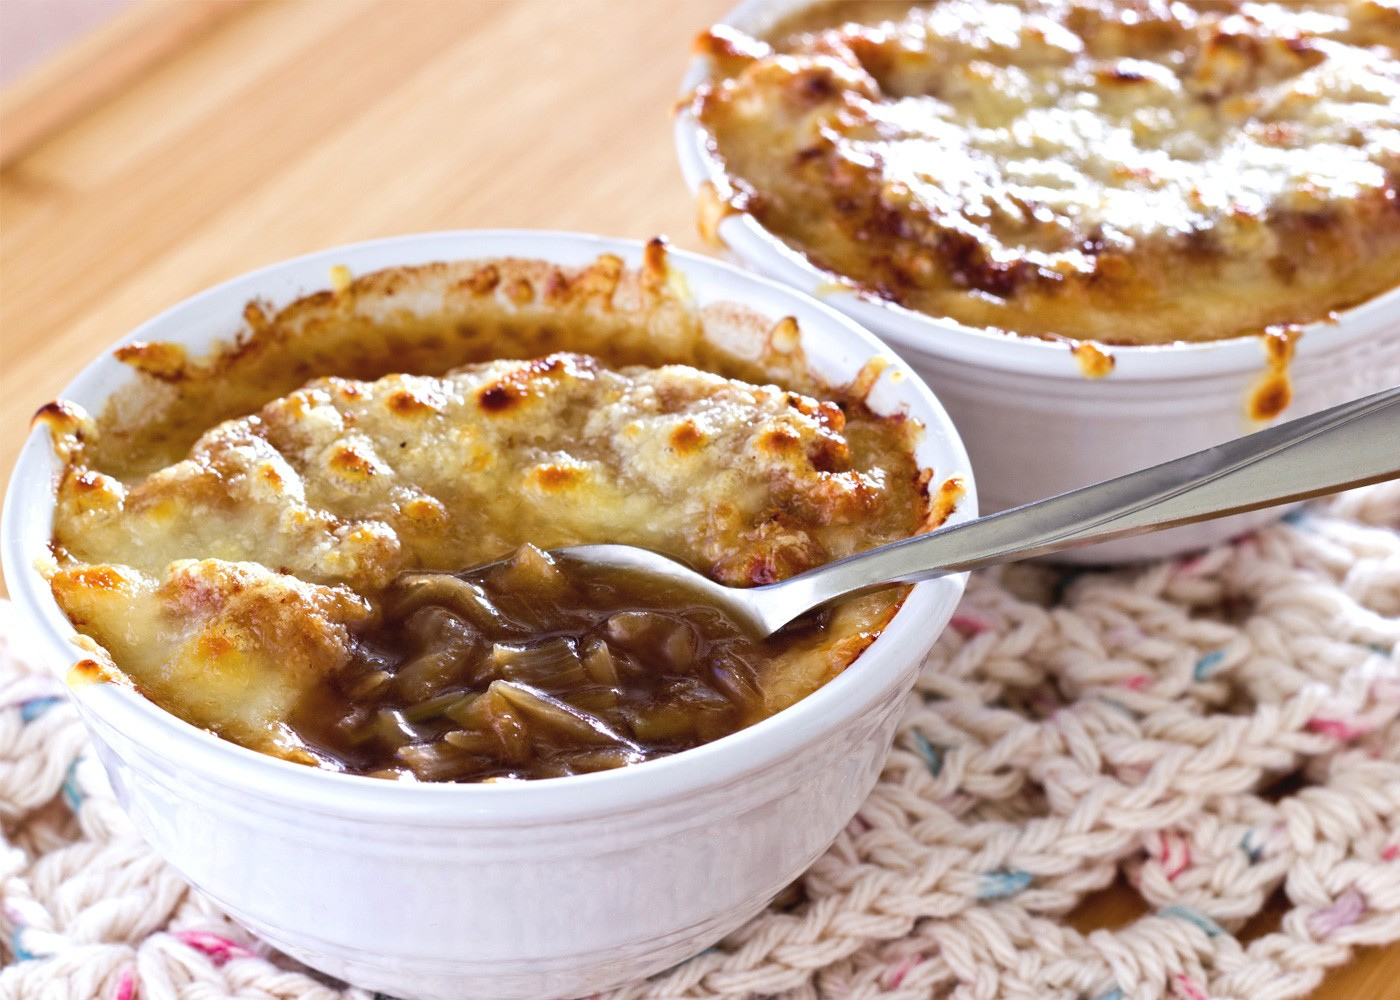 French Leek and Onion Soup with cheese